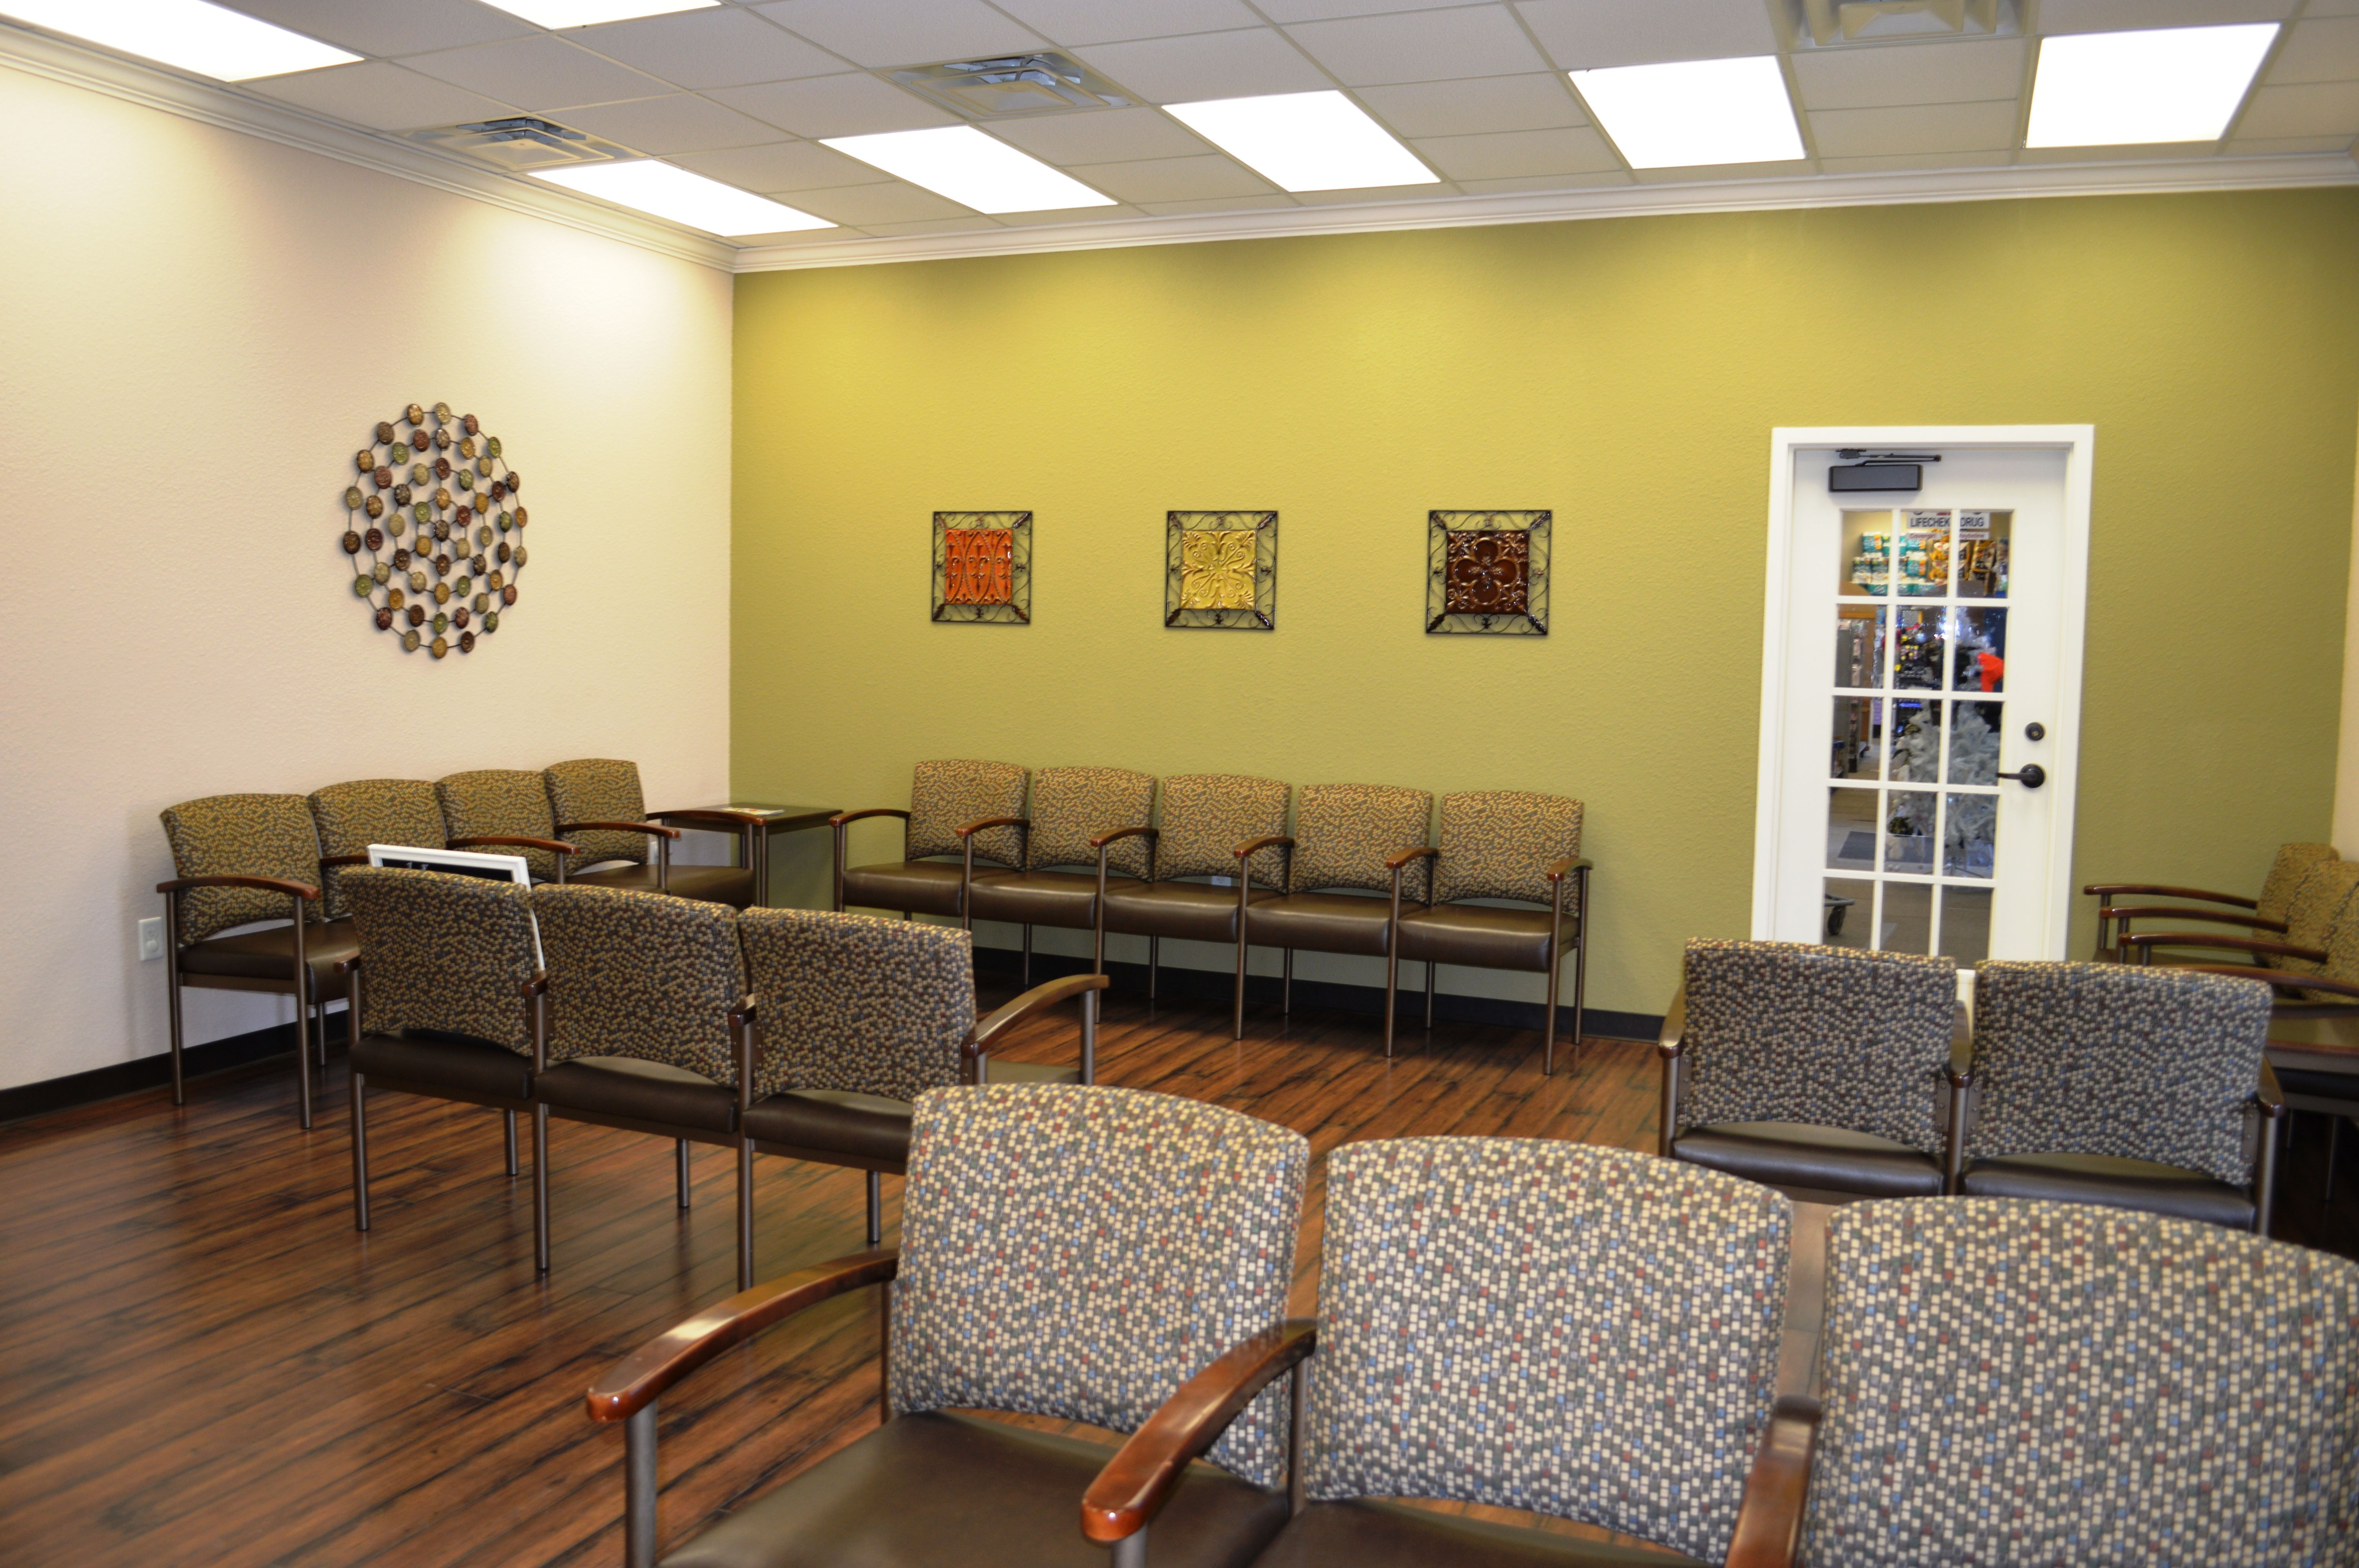 Get treated not seated at our new urgent care center in